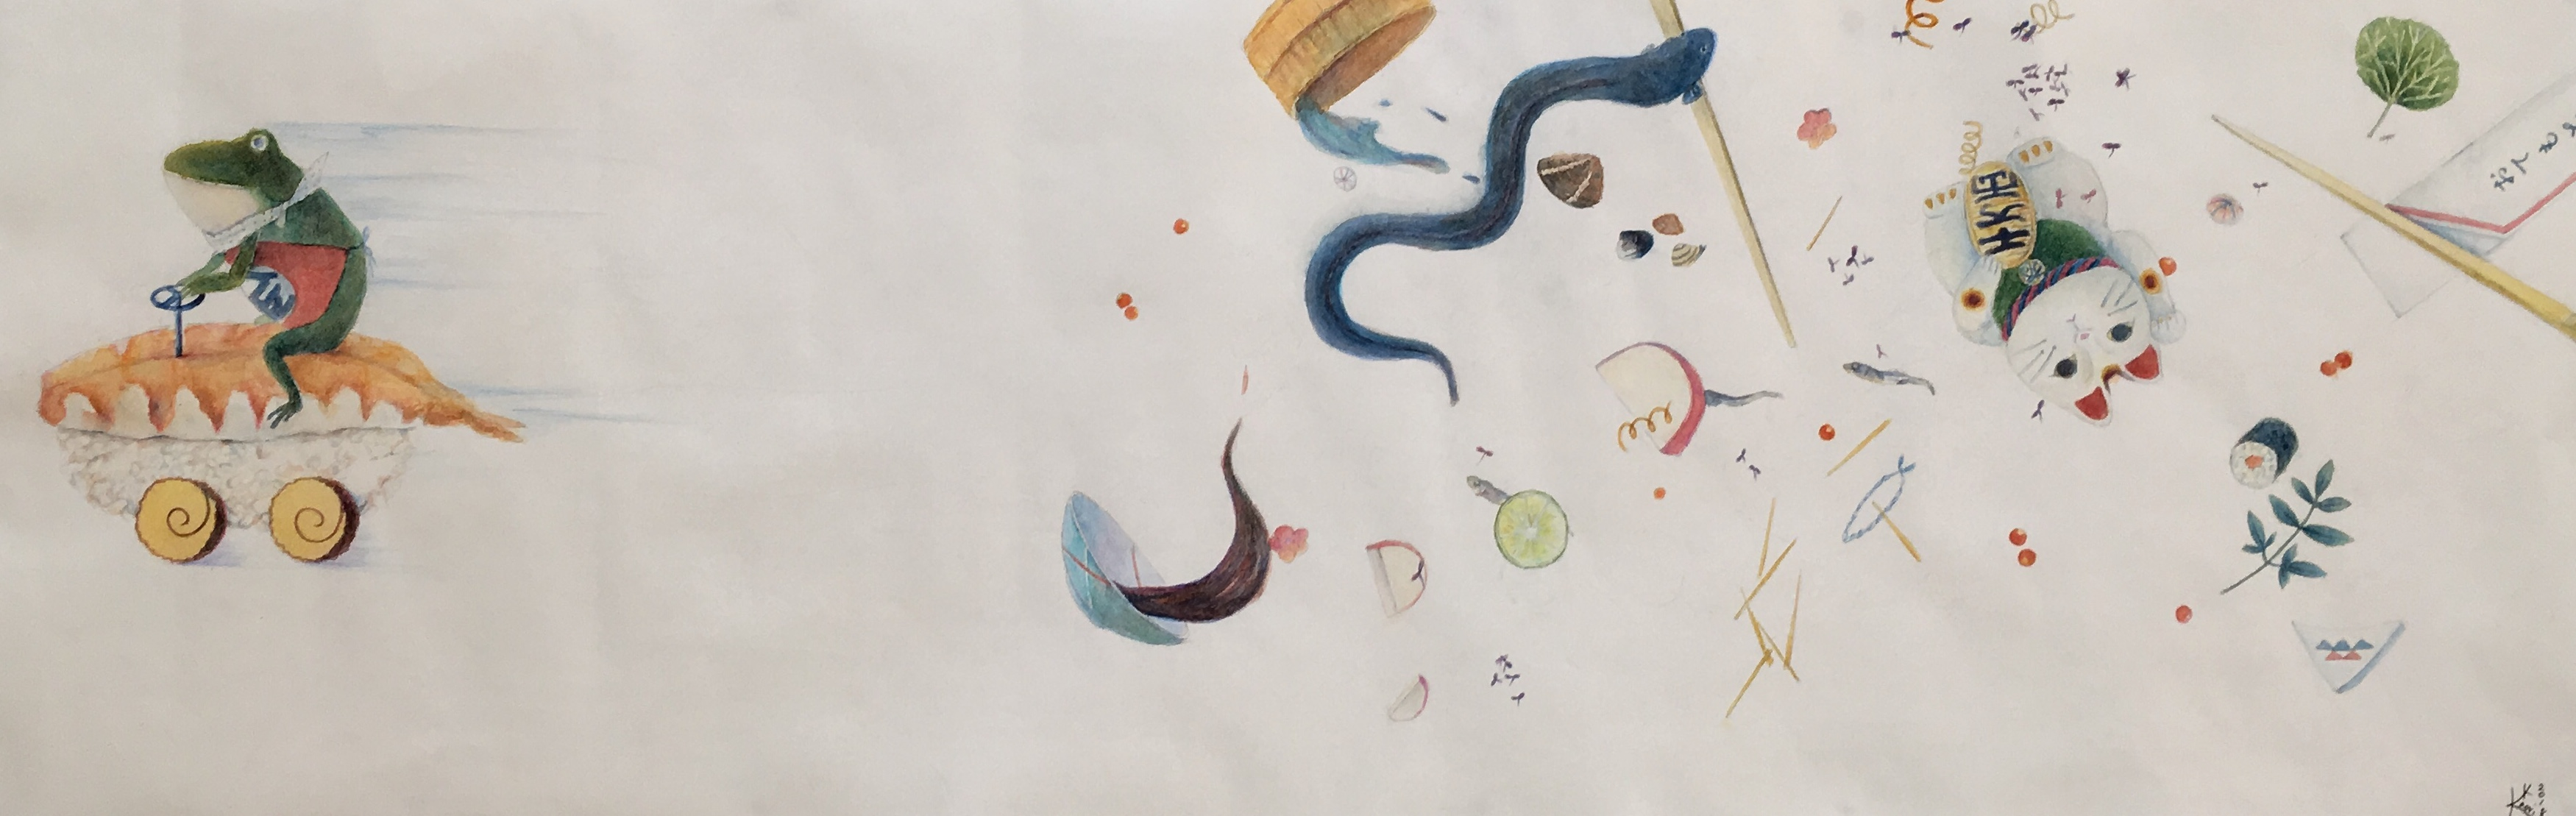 《Cloud Trip I III 》800×450mm, Watercolor, color pencil on paper 2018